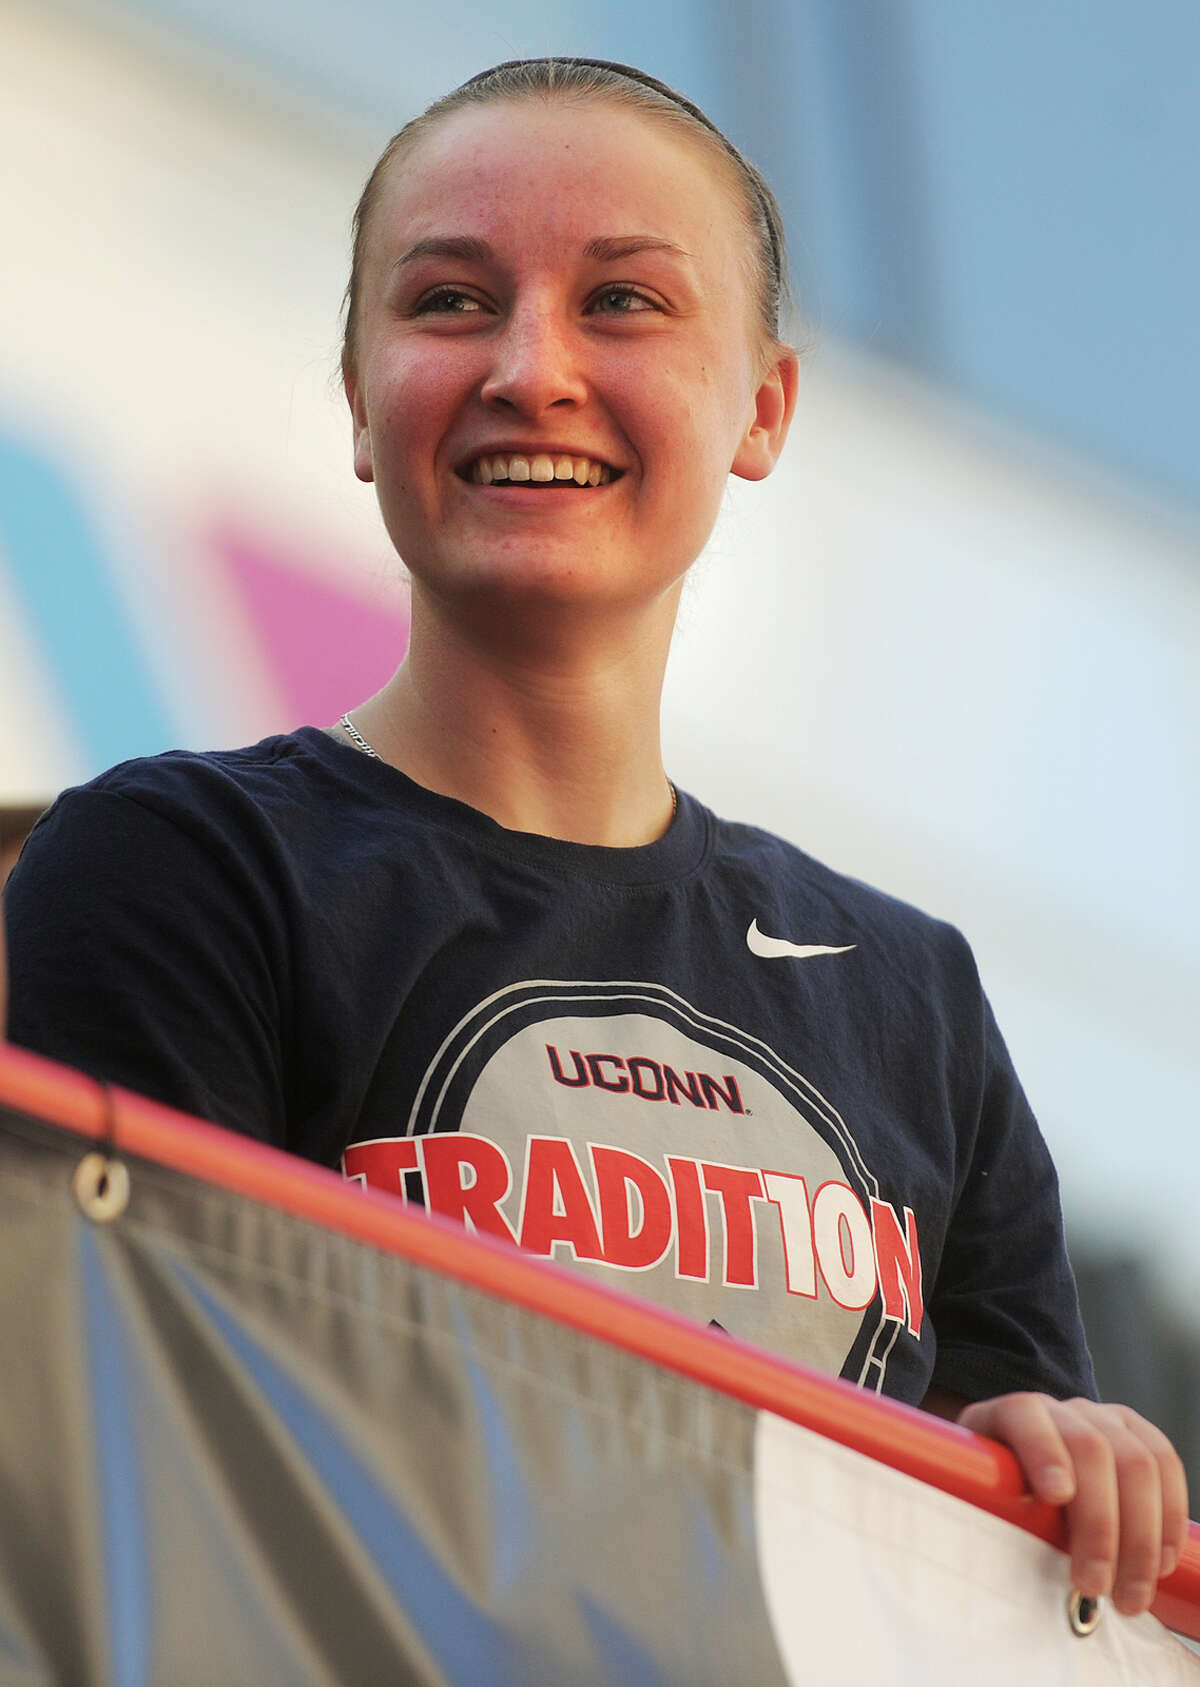 UConn player Tierney Lawlor at the victory parade and rally honoring the 2015 UCONN women's basketball championship team in downtown Hartford, Conn. on Sunday, April 12, 2015.